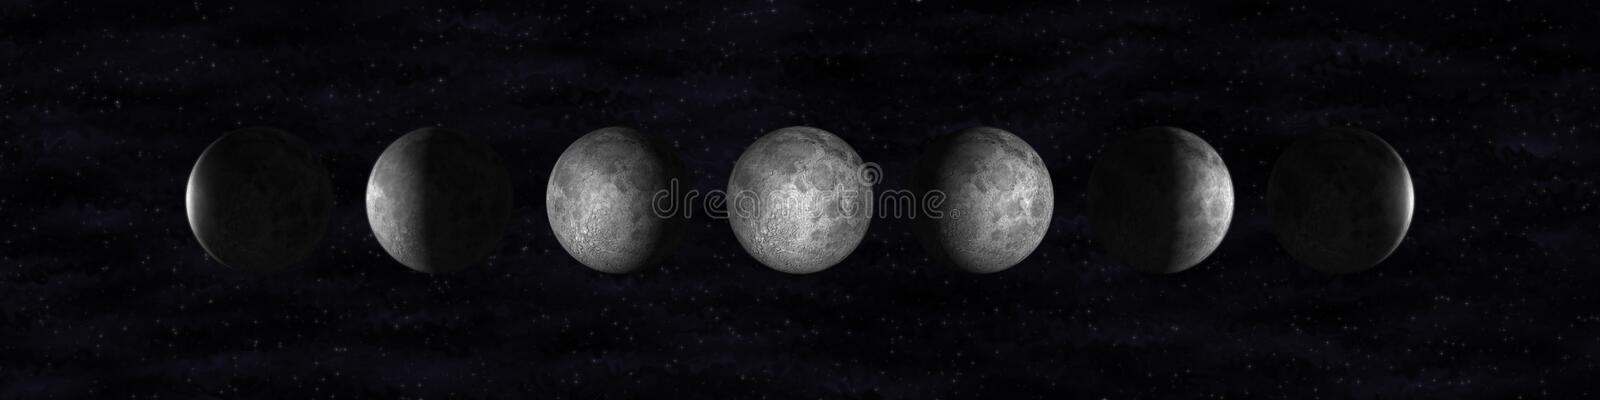 Phases de lune illustration de vecteur